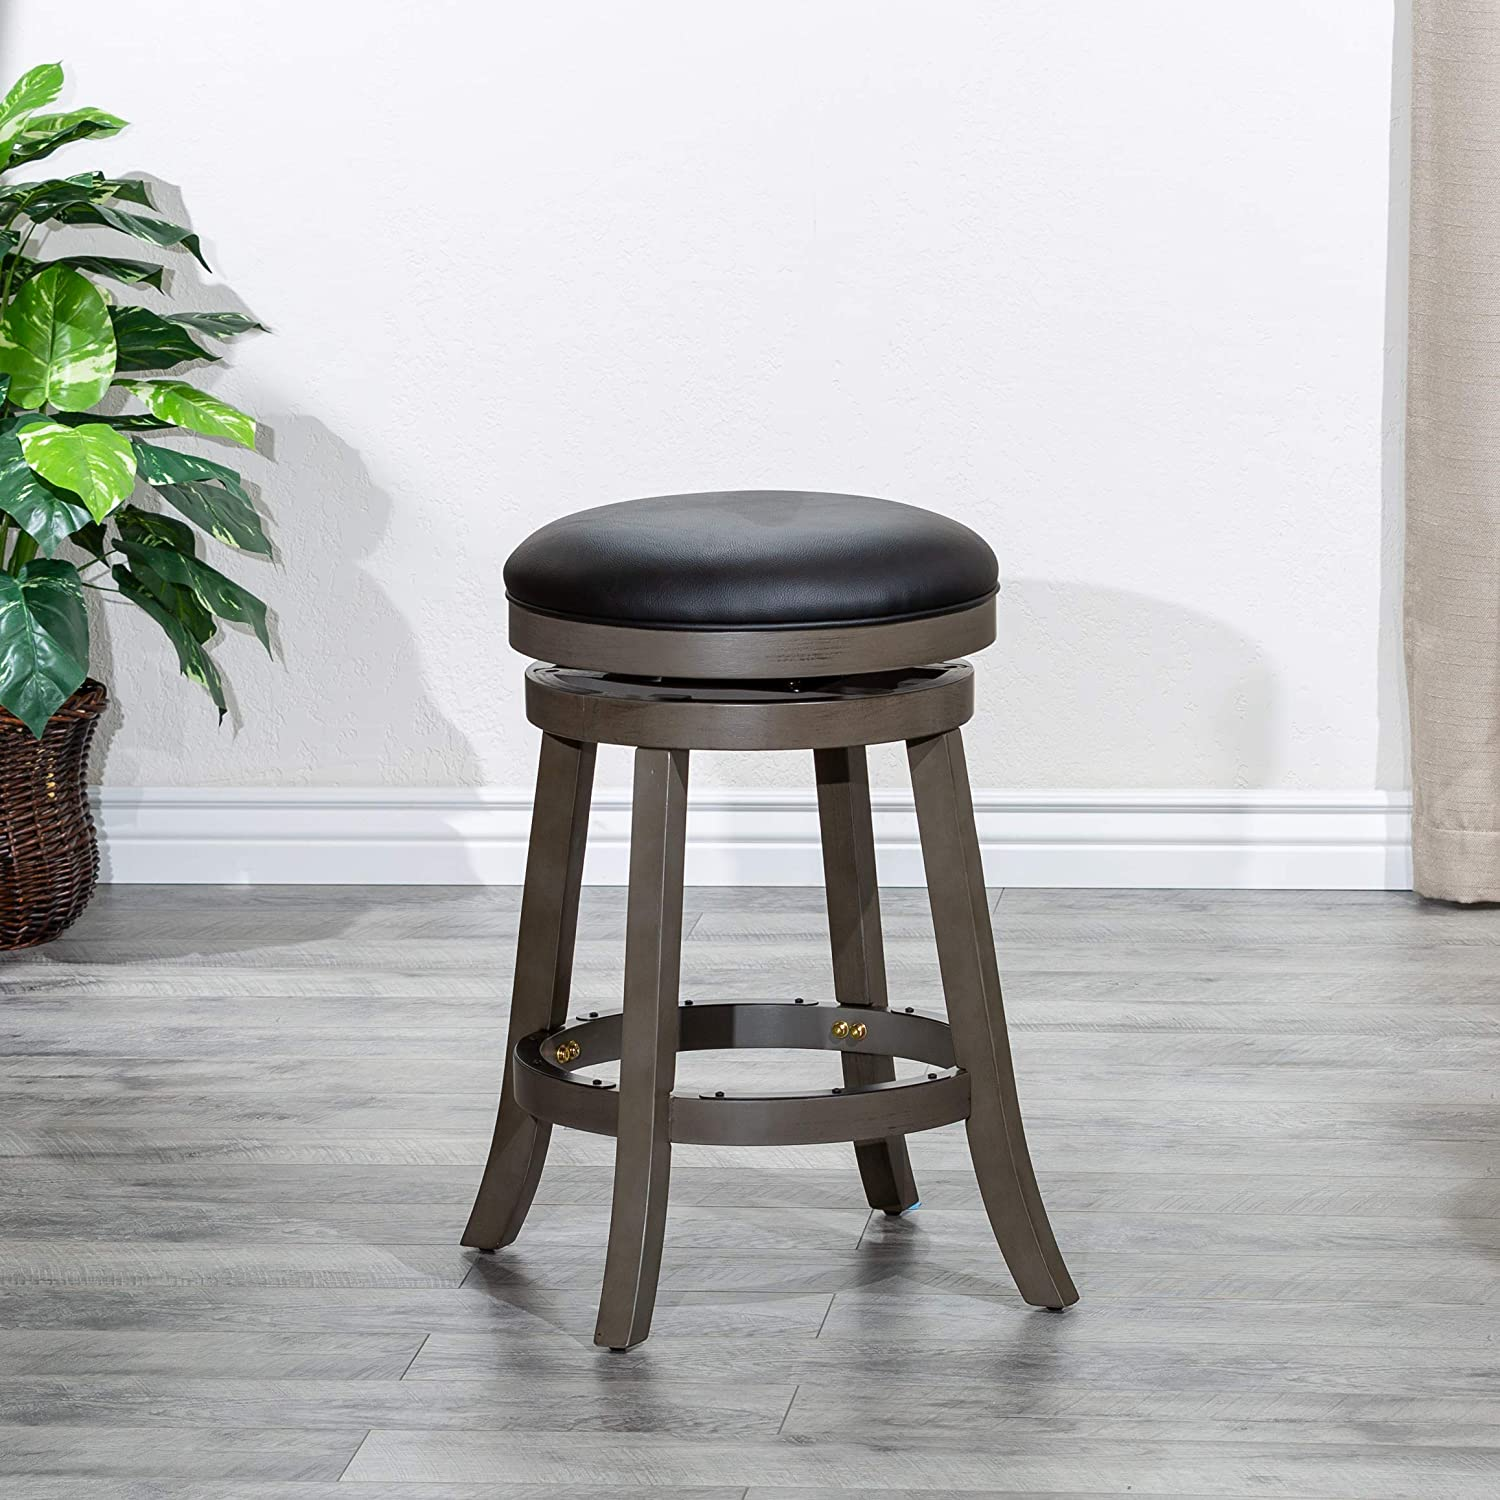 DTY Max 49% OFF Indoor Living Creede Backless Ranking TOP5 Weathered F Swivel Stool Gray